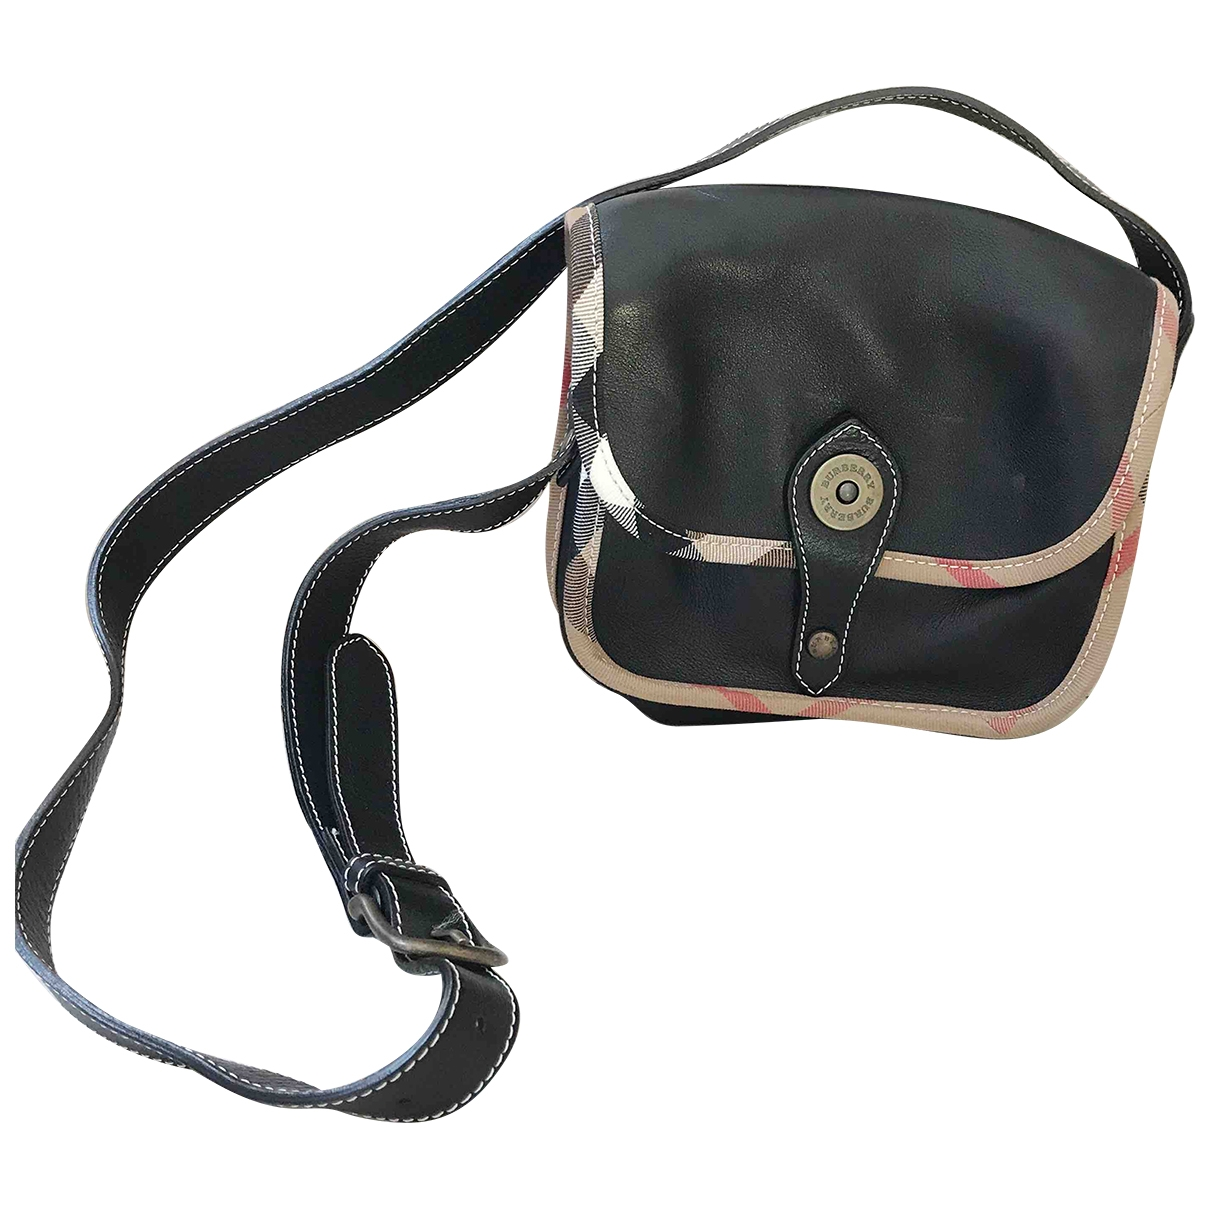 Burberry \N Black Leather handbag for Women \N